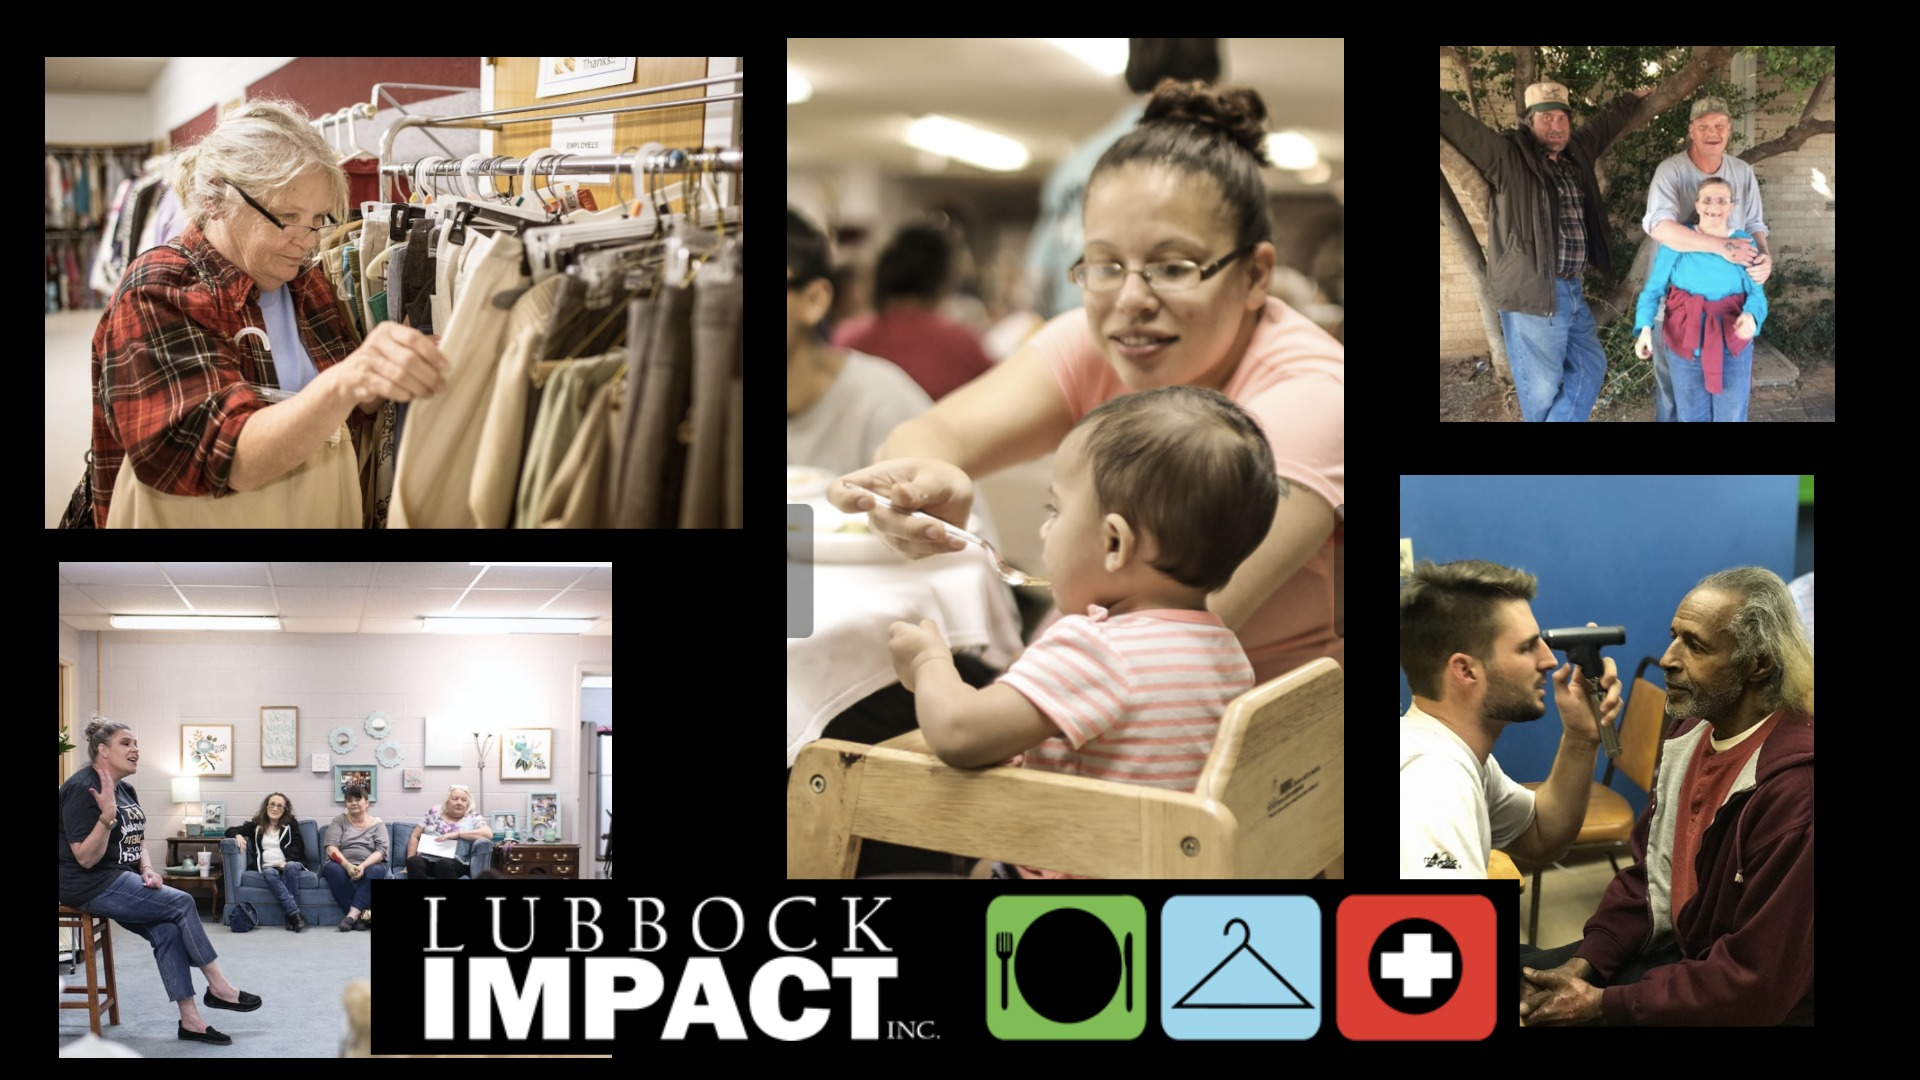 Serve at Lubbock Impact